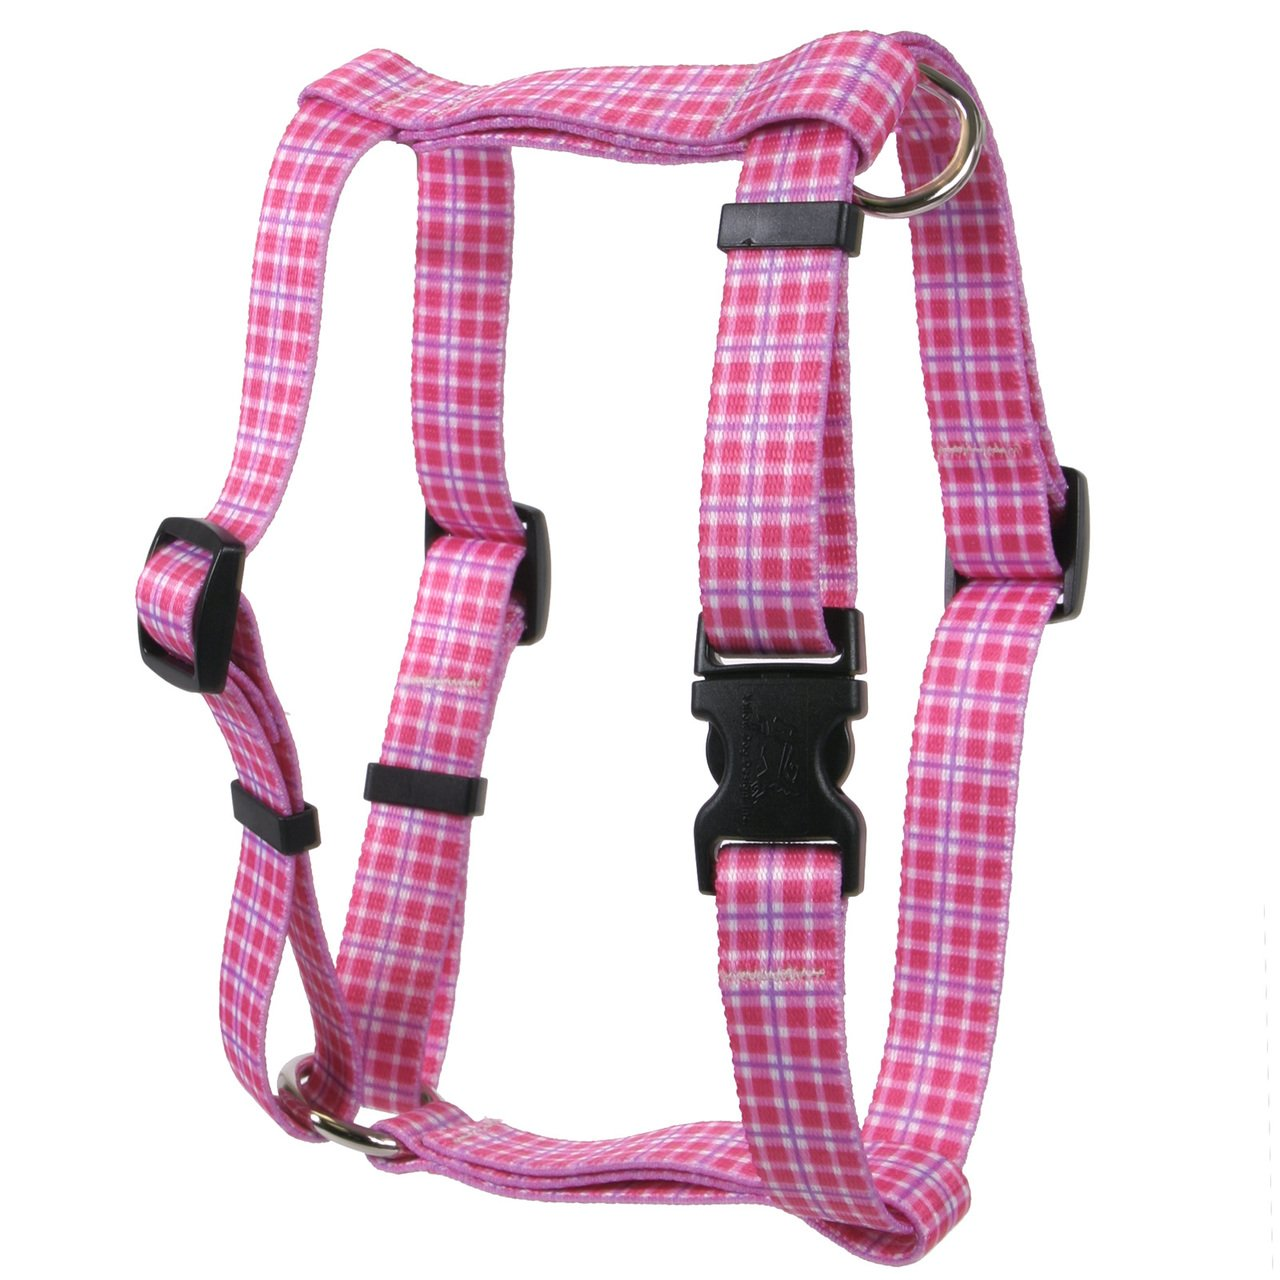 Yellow Dog Design Preppy Plaid Pink Roman Style H Dog Harness, X-Large-1'' Wide and fits Chest of 28 to 36''